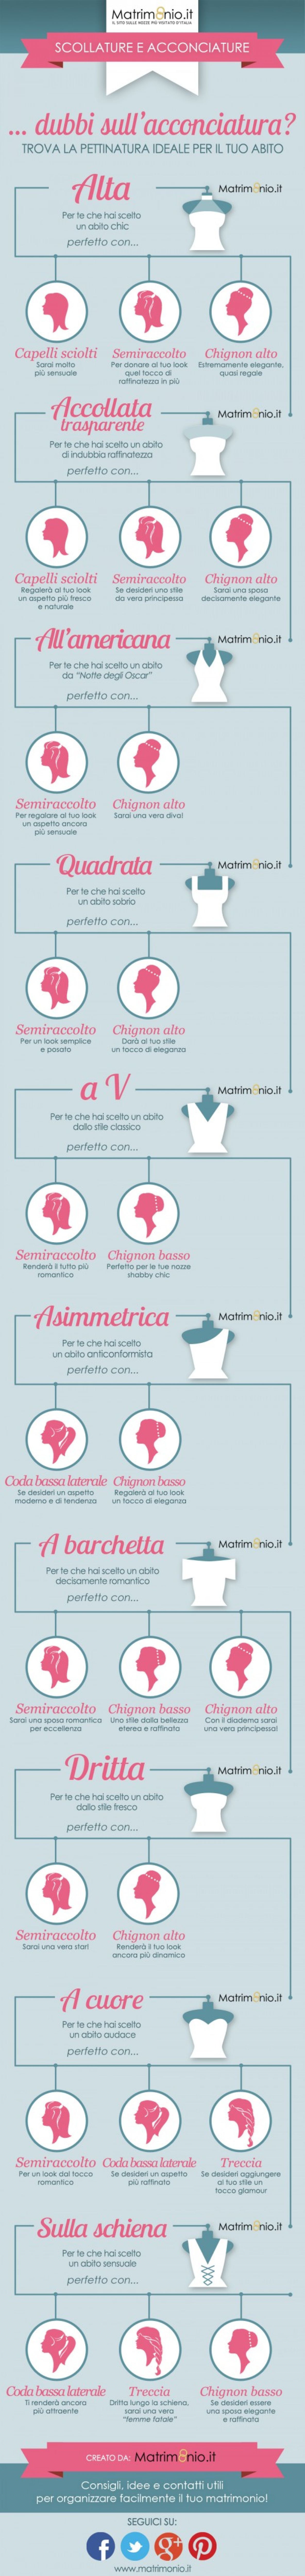 Best Hairstyles for the Bride and Necklines Infographic